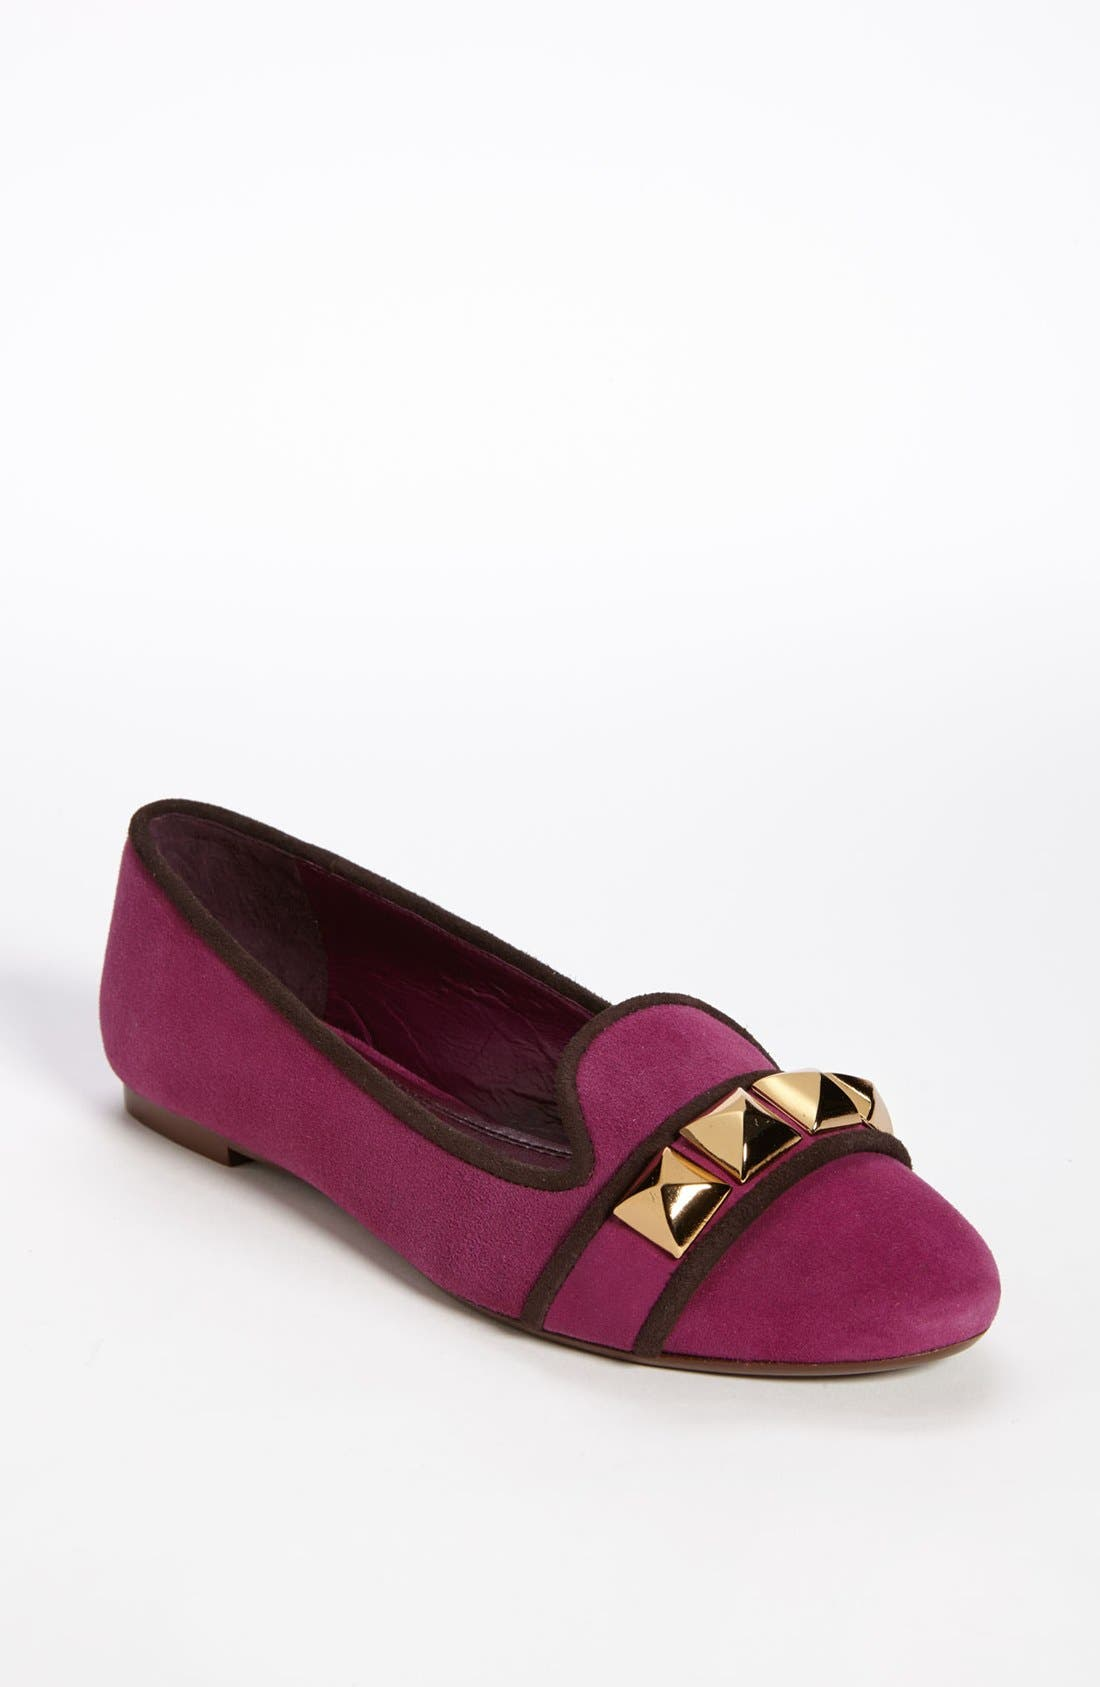 Main Image - Tory Burch 'Asher' Loafer Flat (Online Only Color)